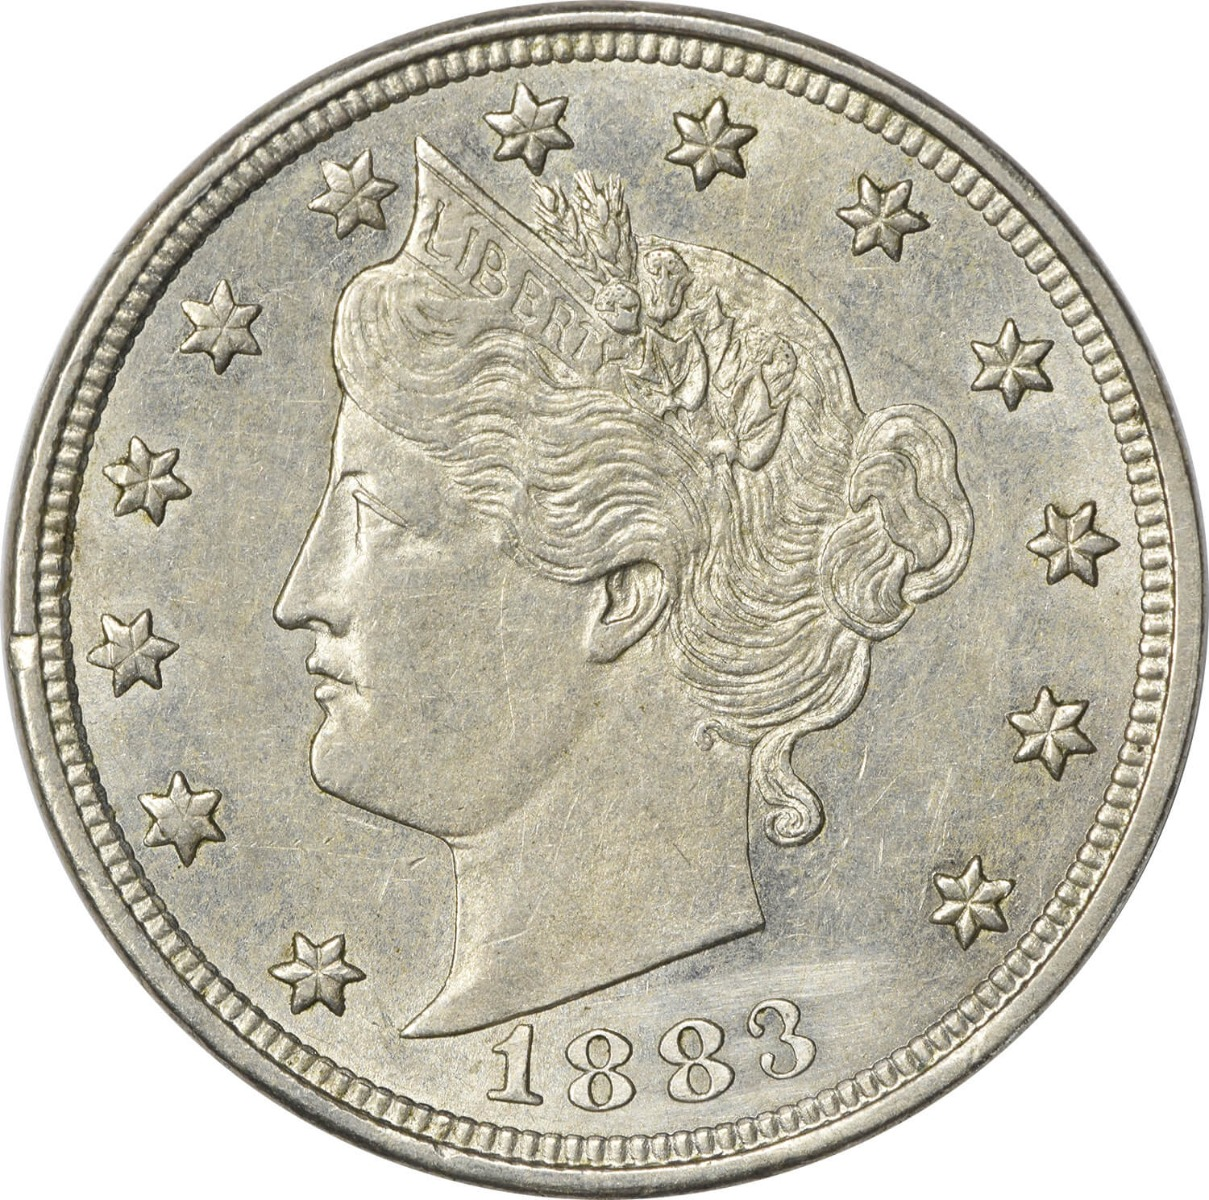 1883 Liberty Nickel No Cents AU Uncertified